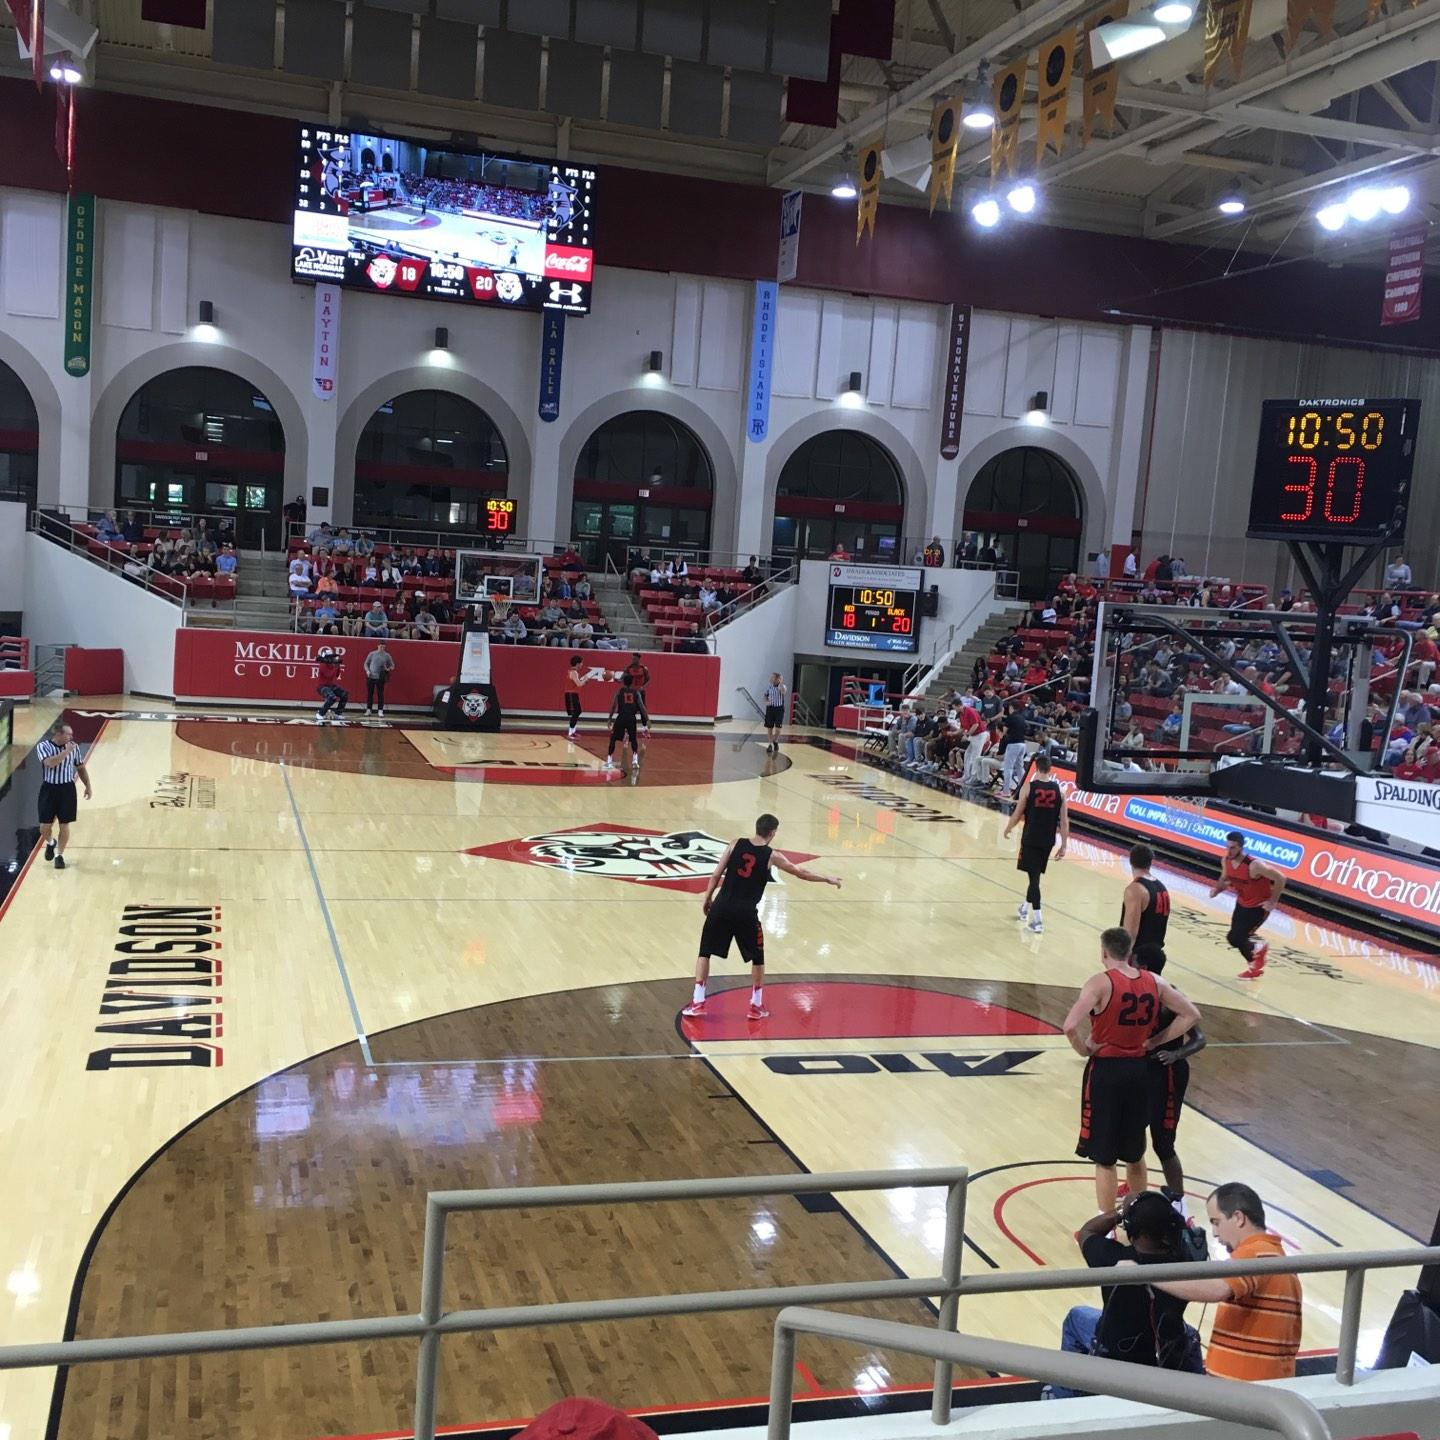 John M. Belk Arena Section 19 Row E Seat 3